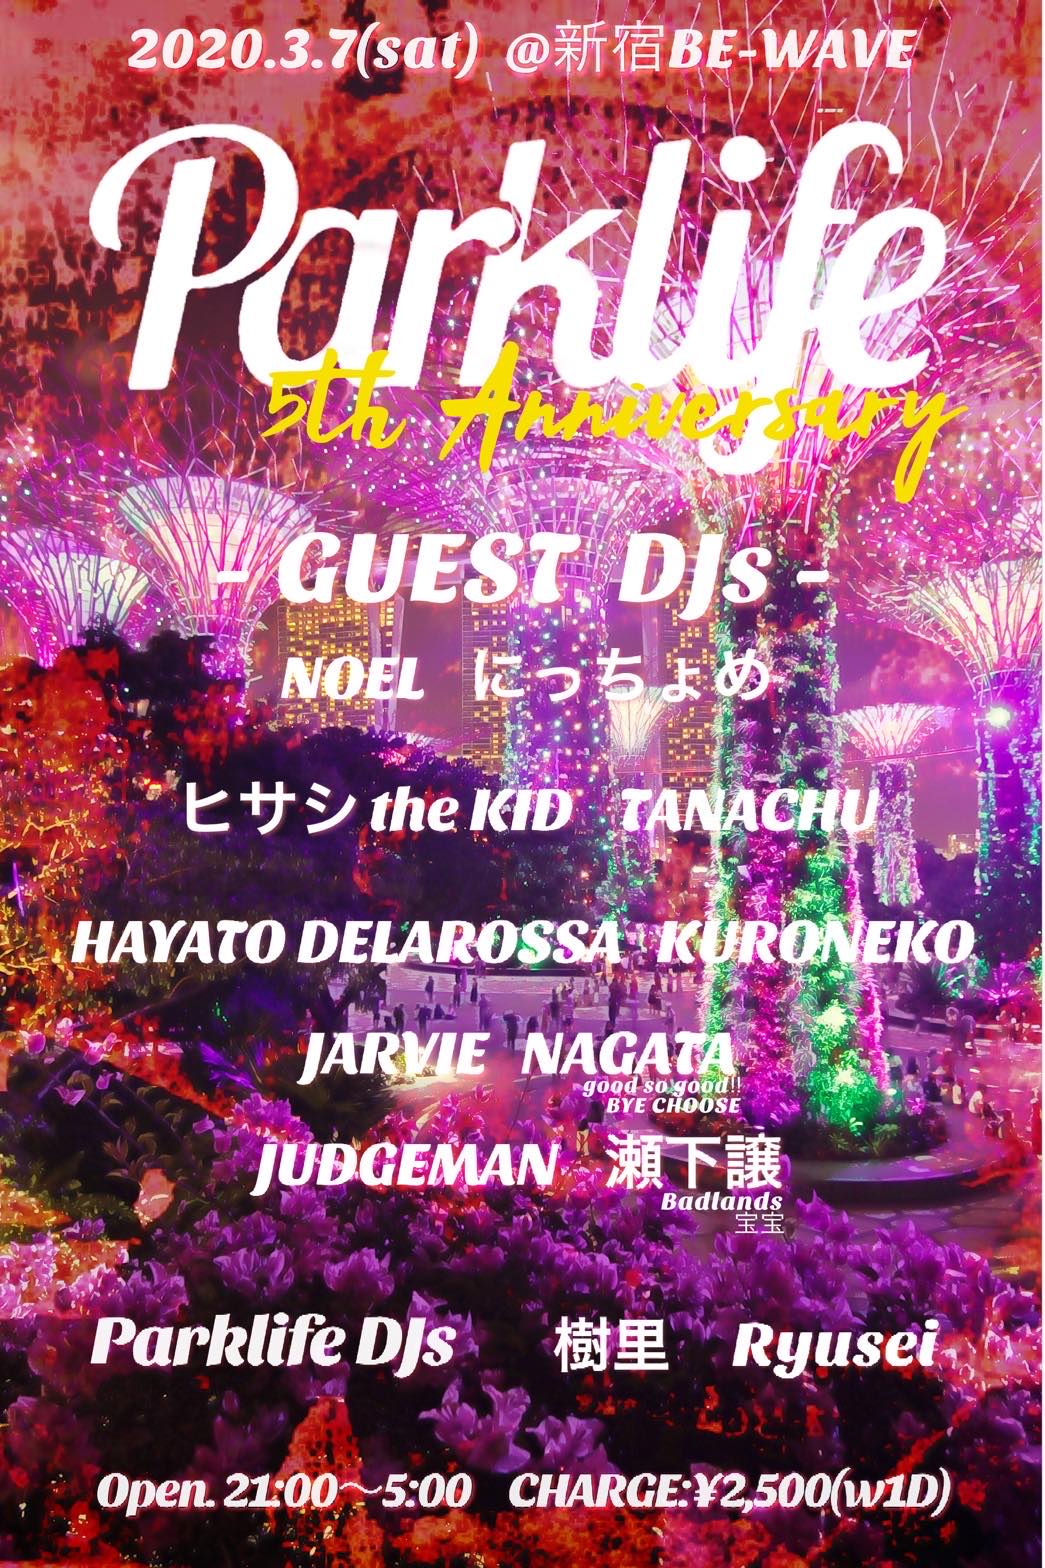 Parklife -5th Anniversary Party- 2020.3.7(土)@shinjuku BE-WAVE